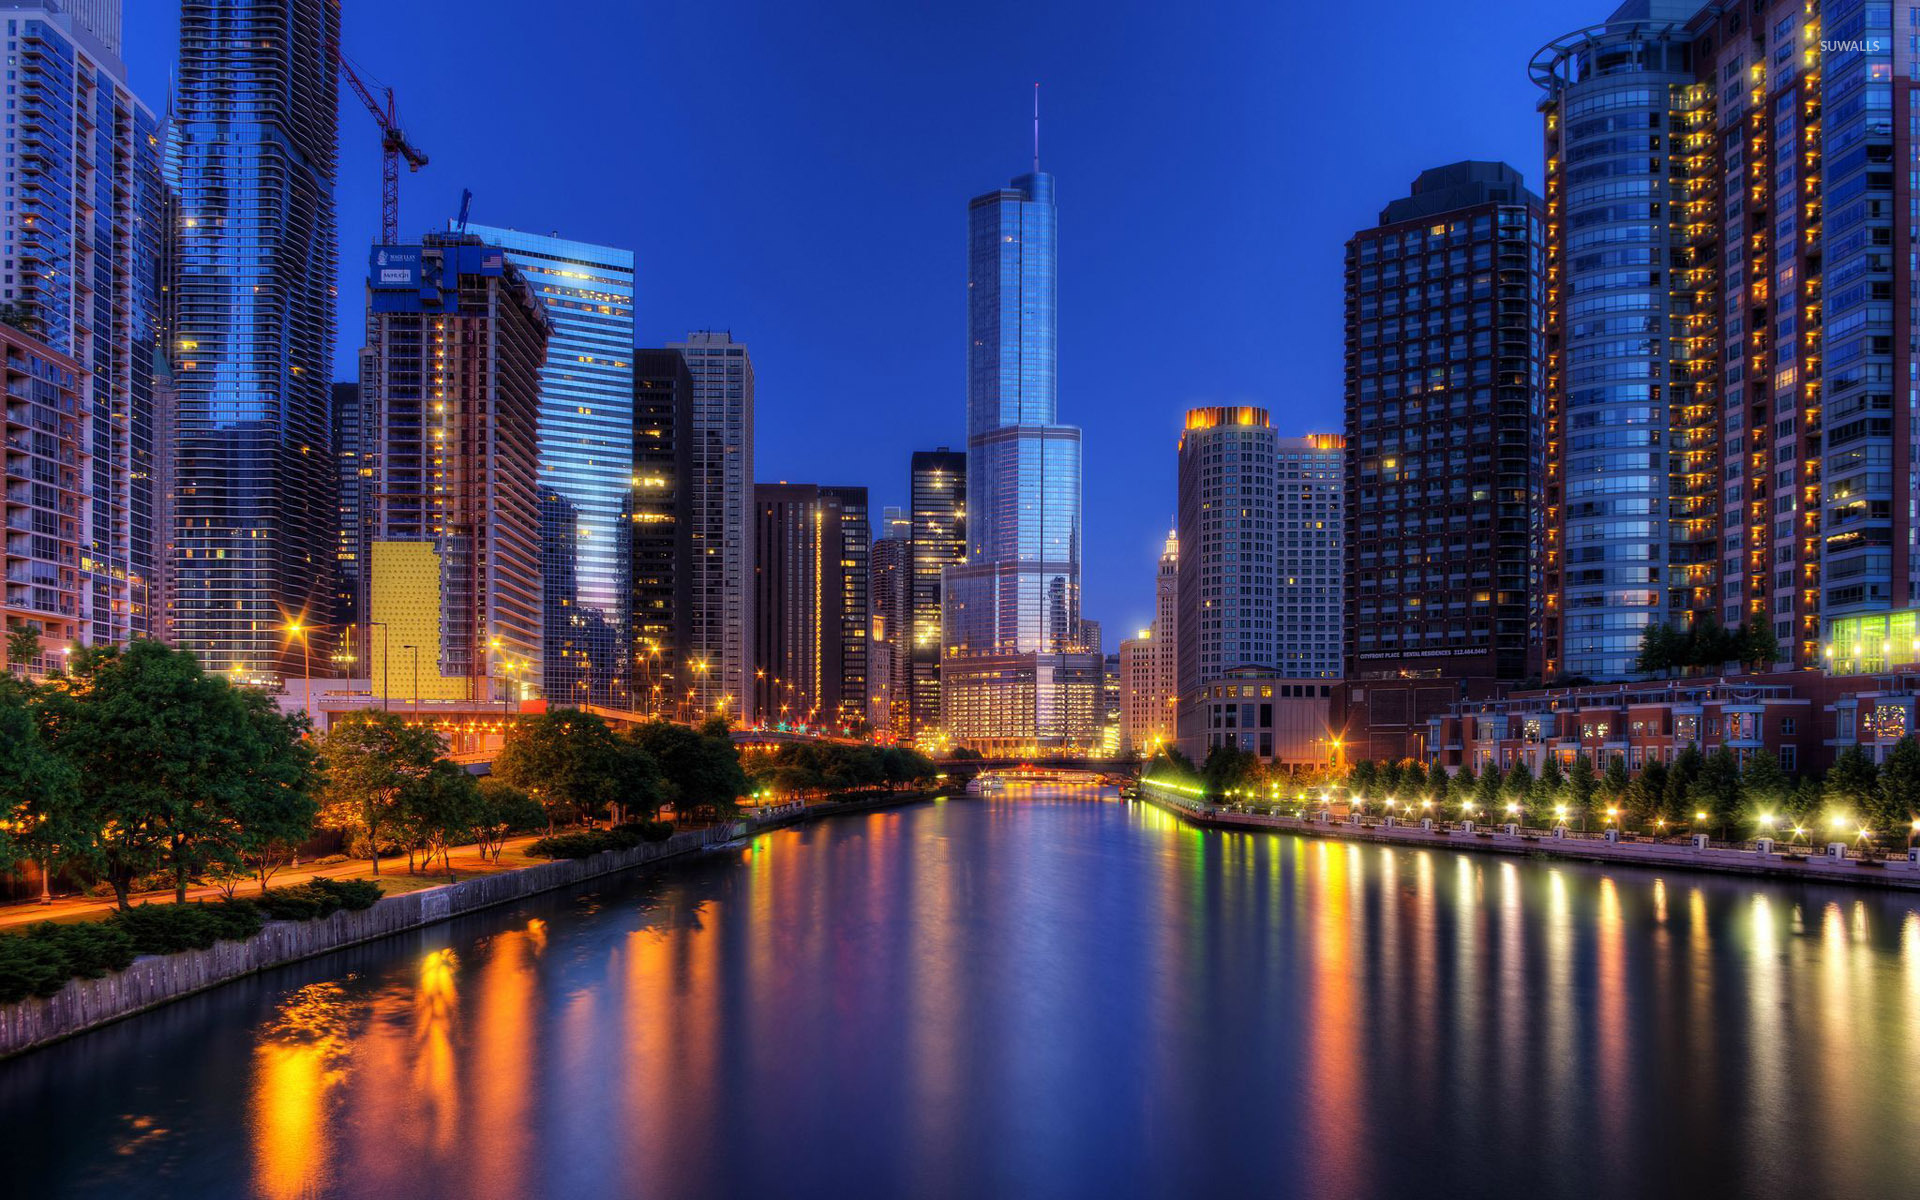 Good Wallpaper Night Chicago - chicago-at-night-28356-1920x1200  Graphic.jpg